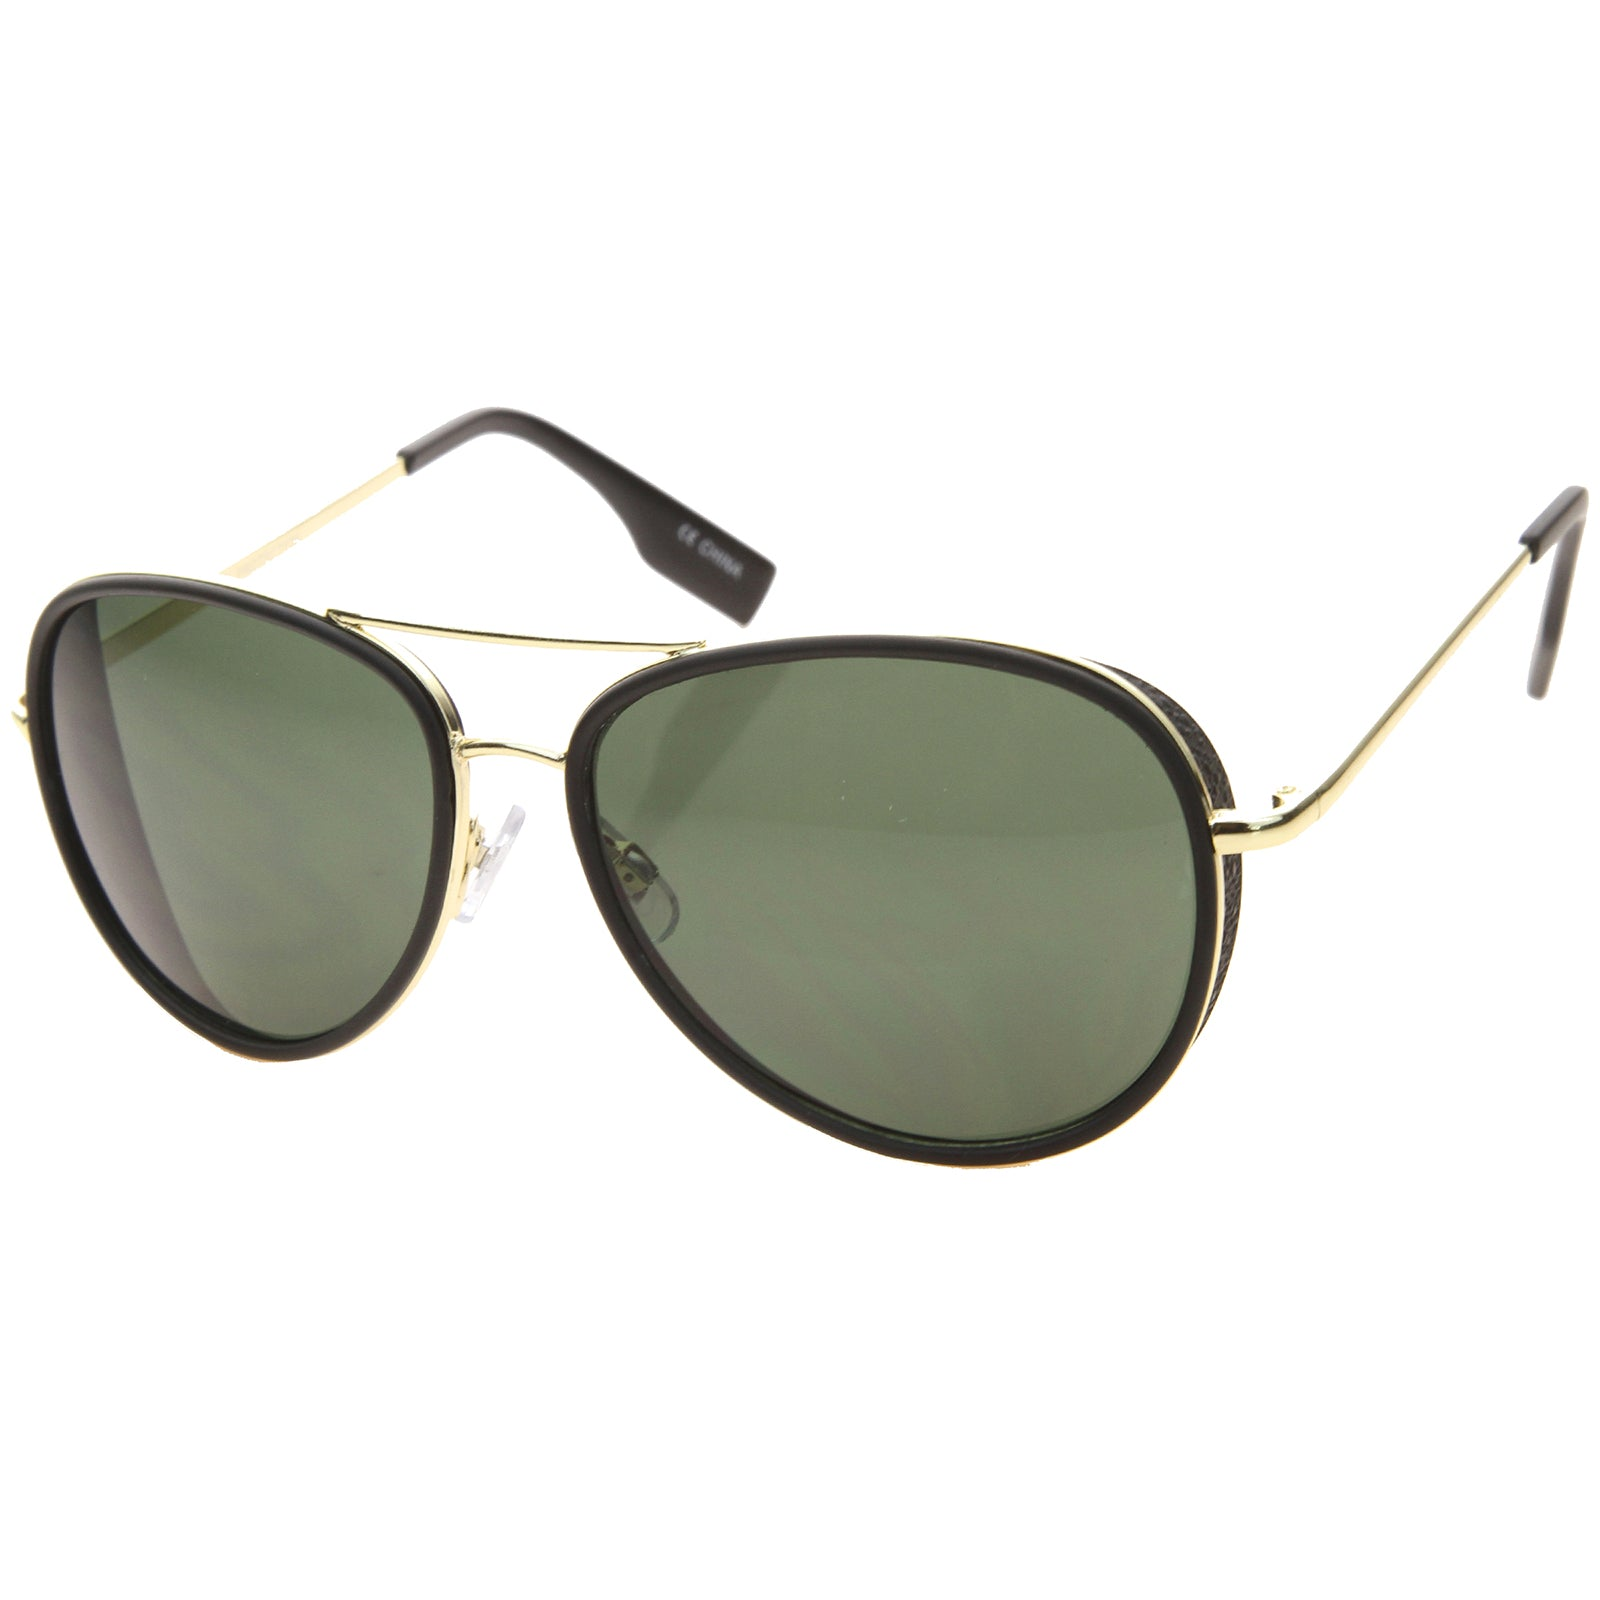 Womens Aviator Sunglasses With UV400 Protected Gradient Lens - sunglass.la - 10